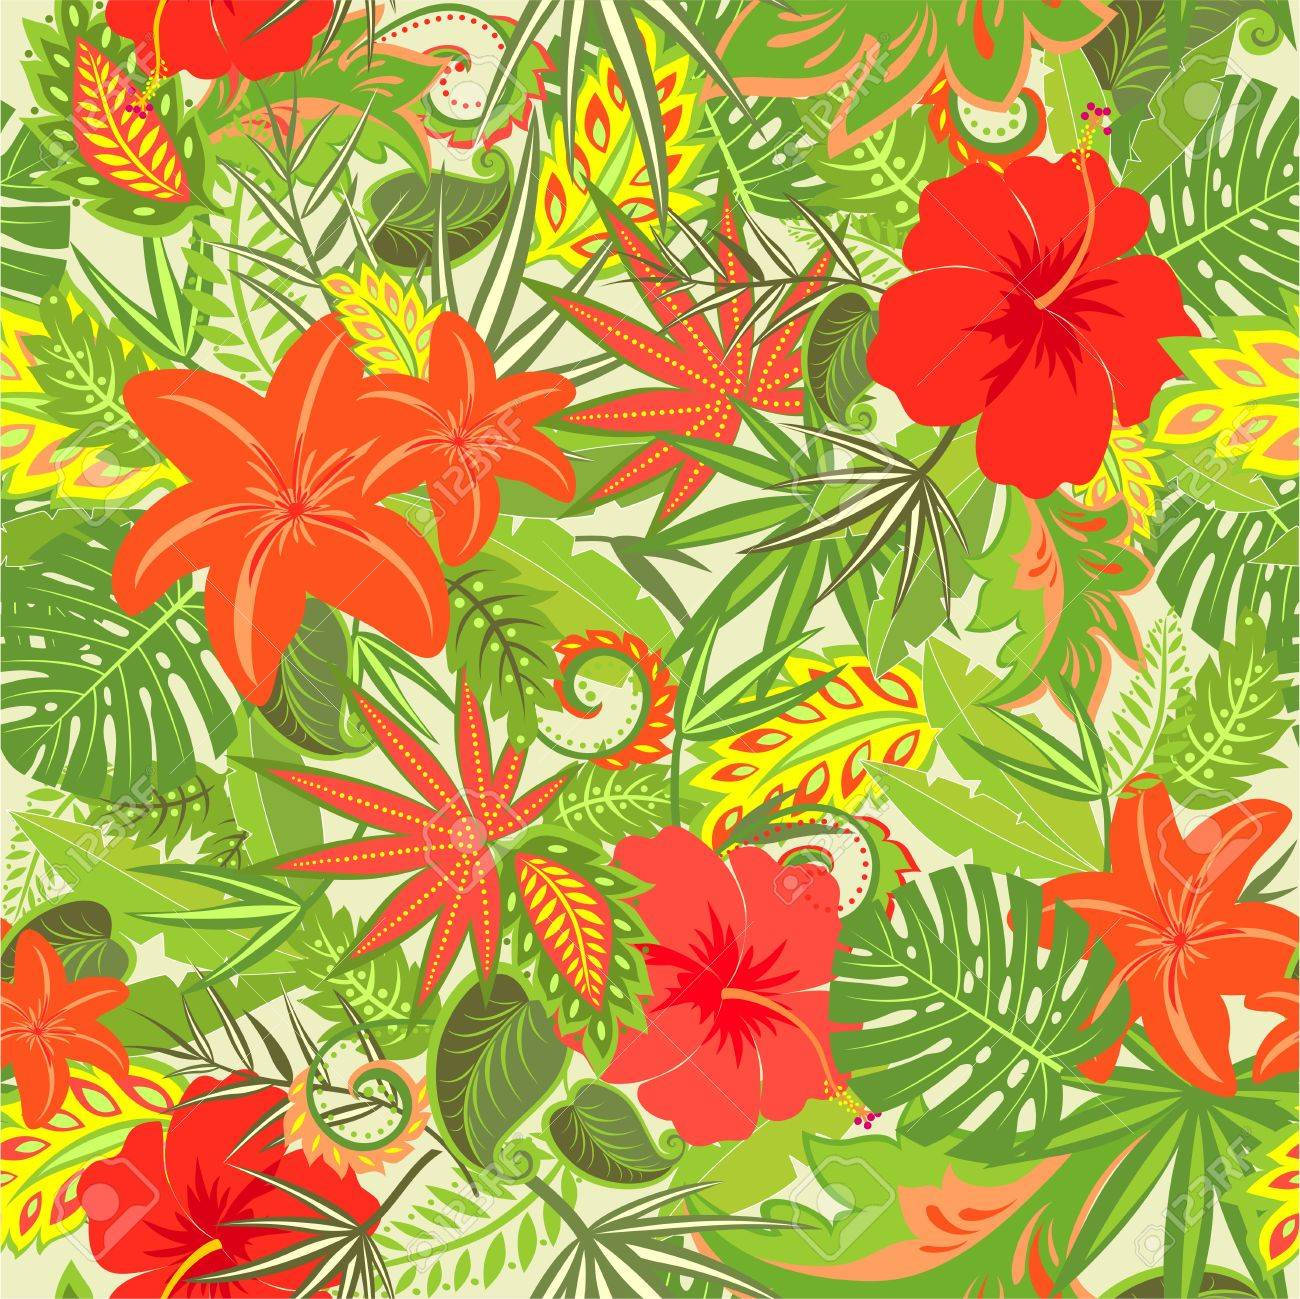 Summery Tropical Floral Wallpaper Royalty Free Cliparts Vectors